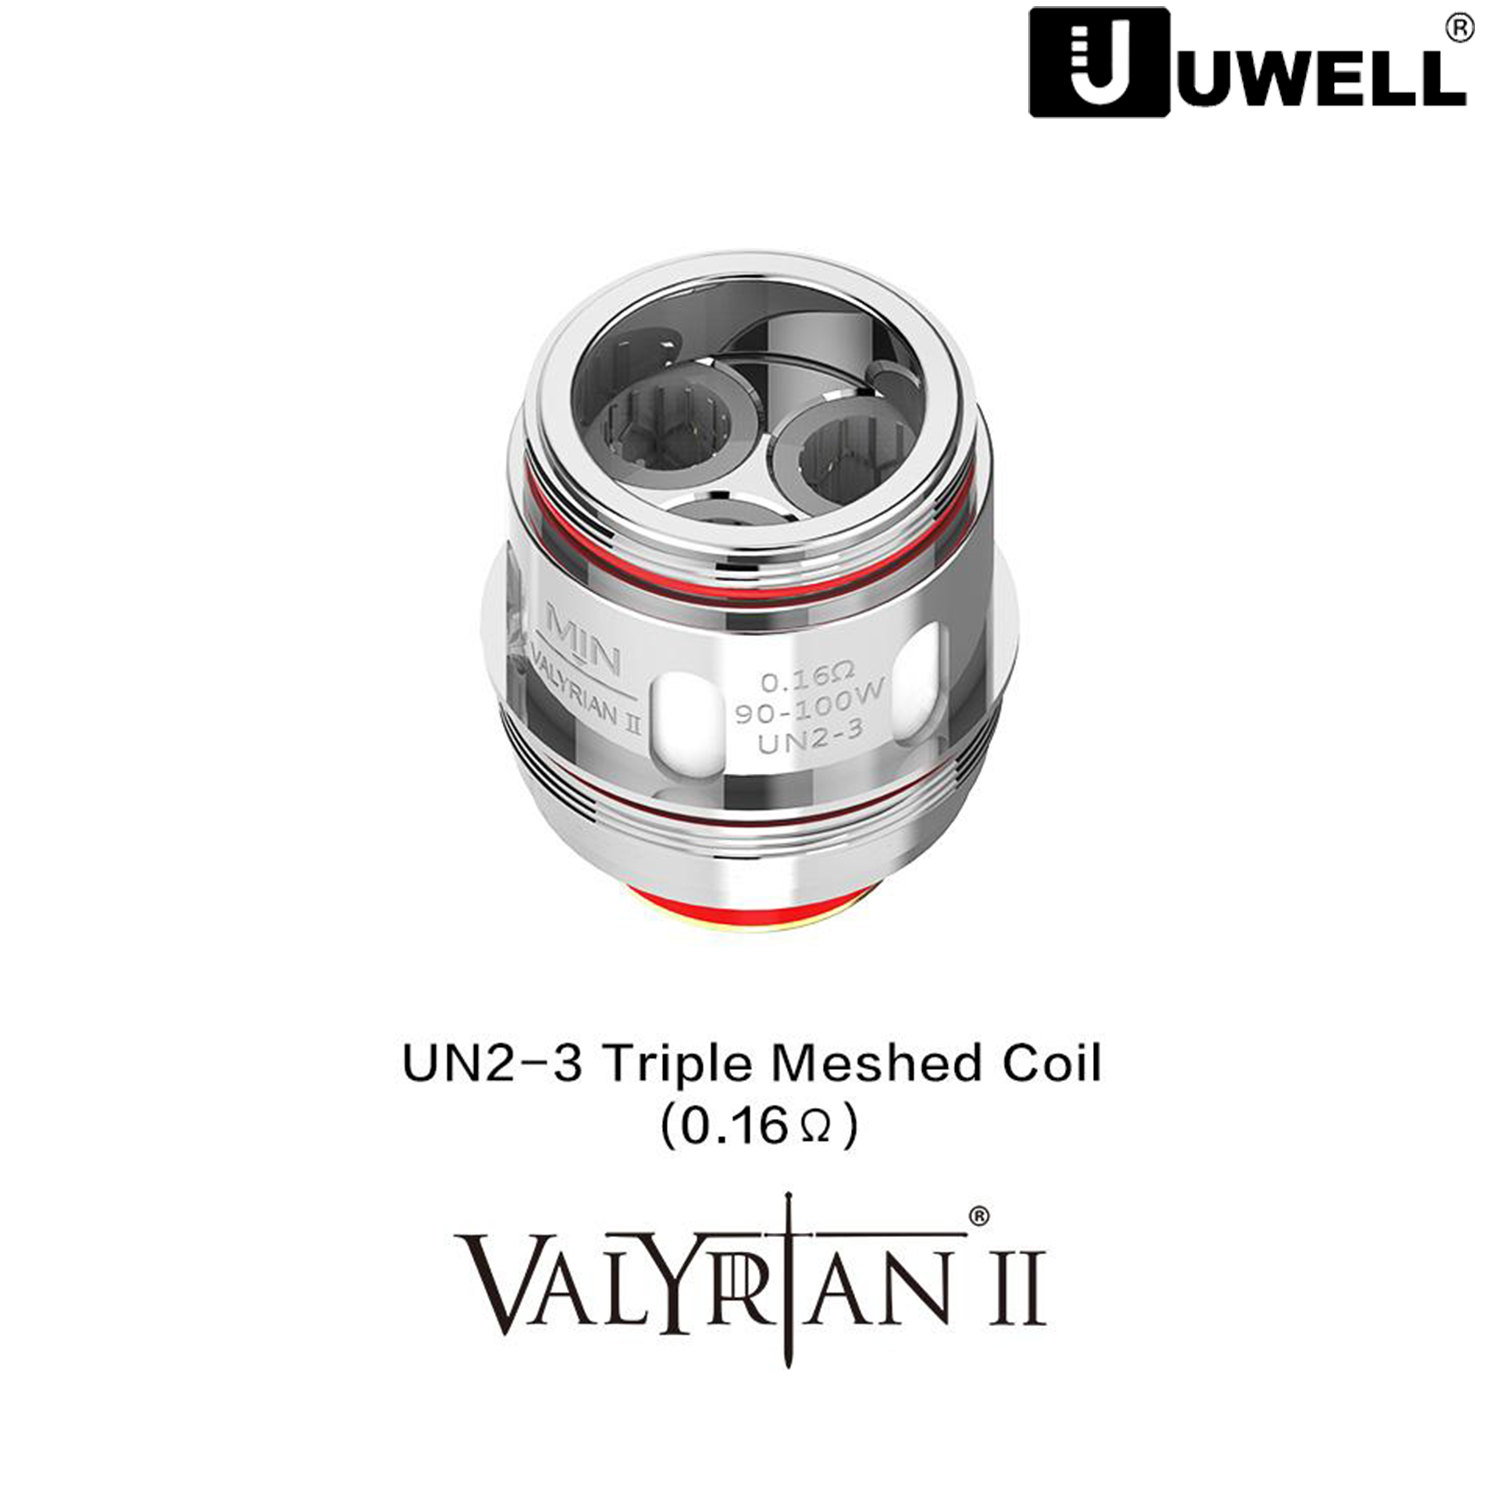 UWELL VALYRIAN 2 REPLACEMENT COIL (Price Per Coil) - Boss Vapes